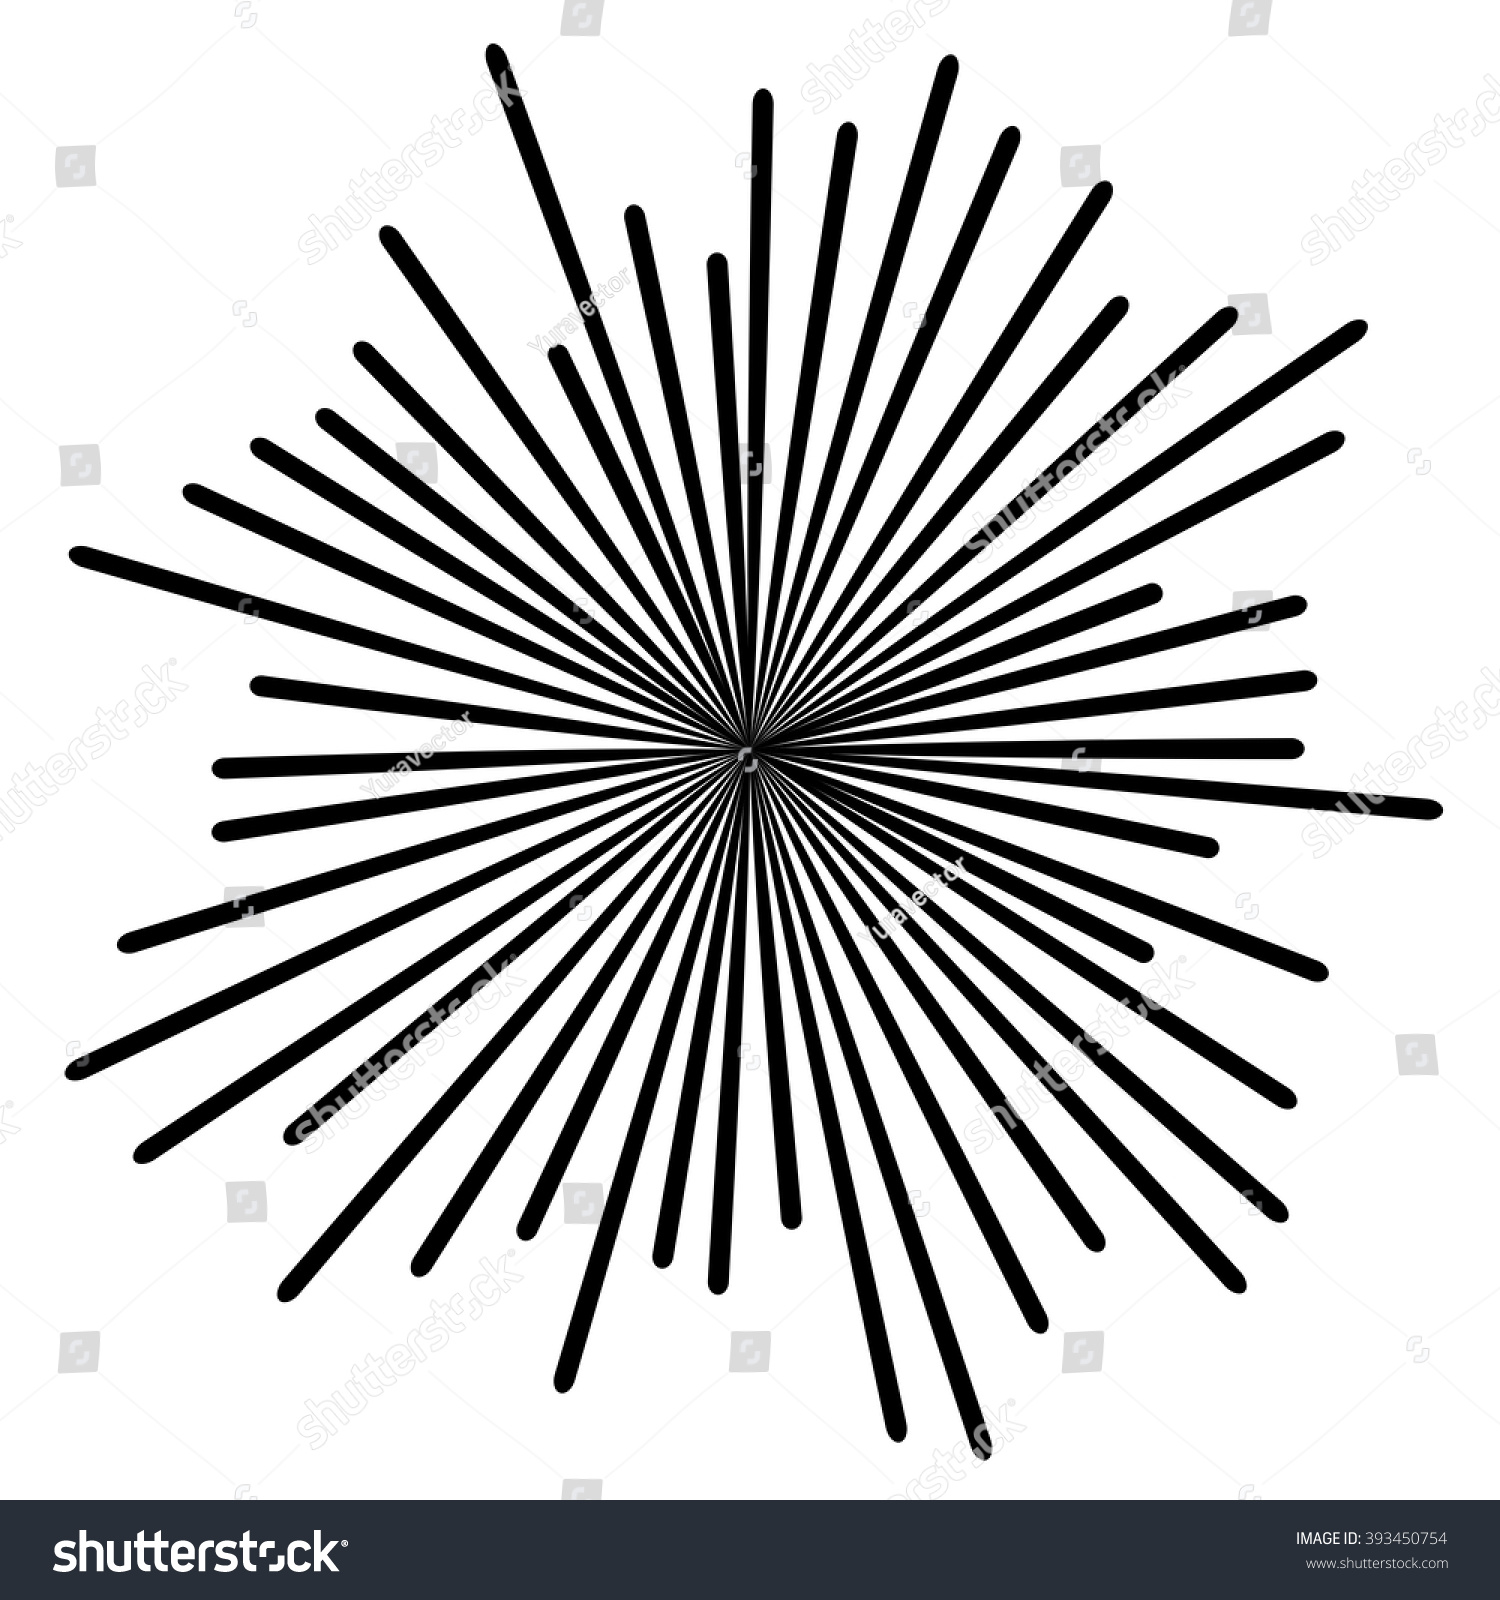 Line Drawing Sun Vector : Black radial lines background sun ray stock vector